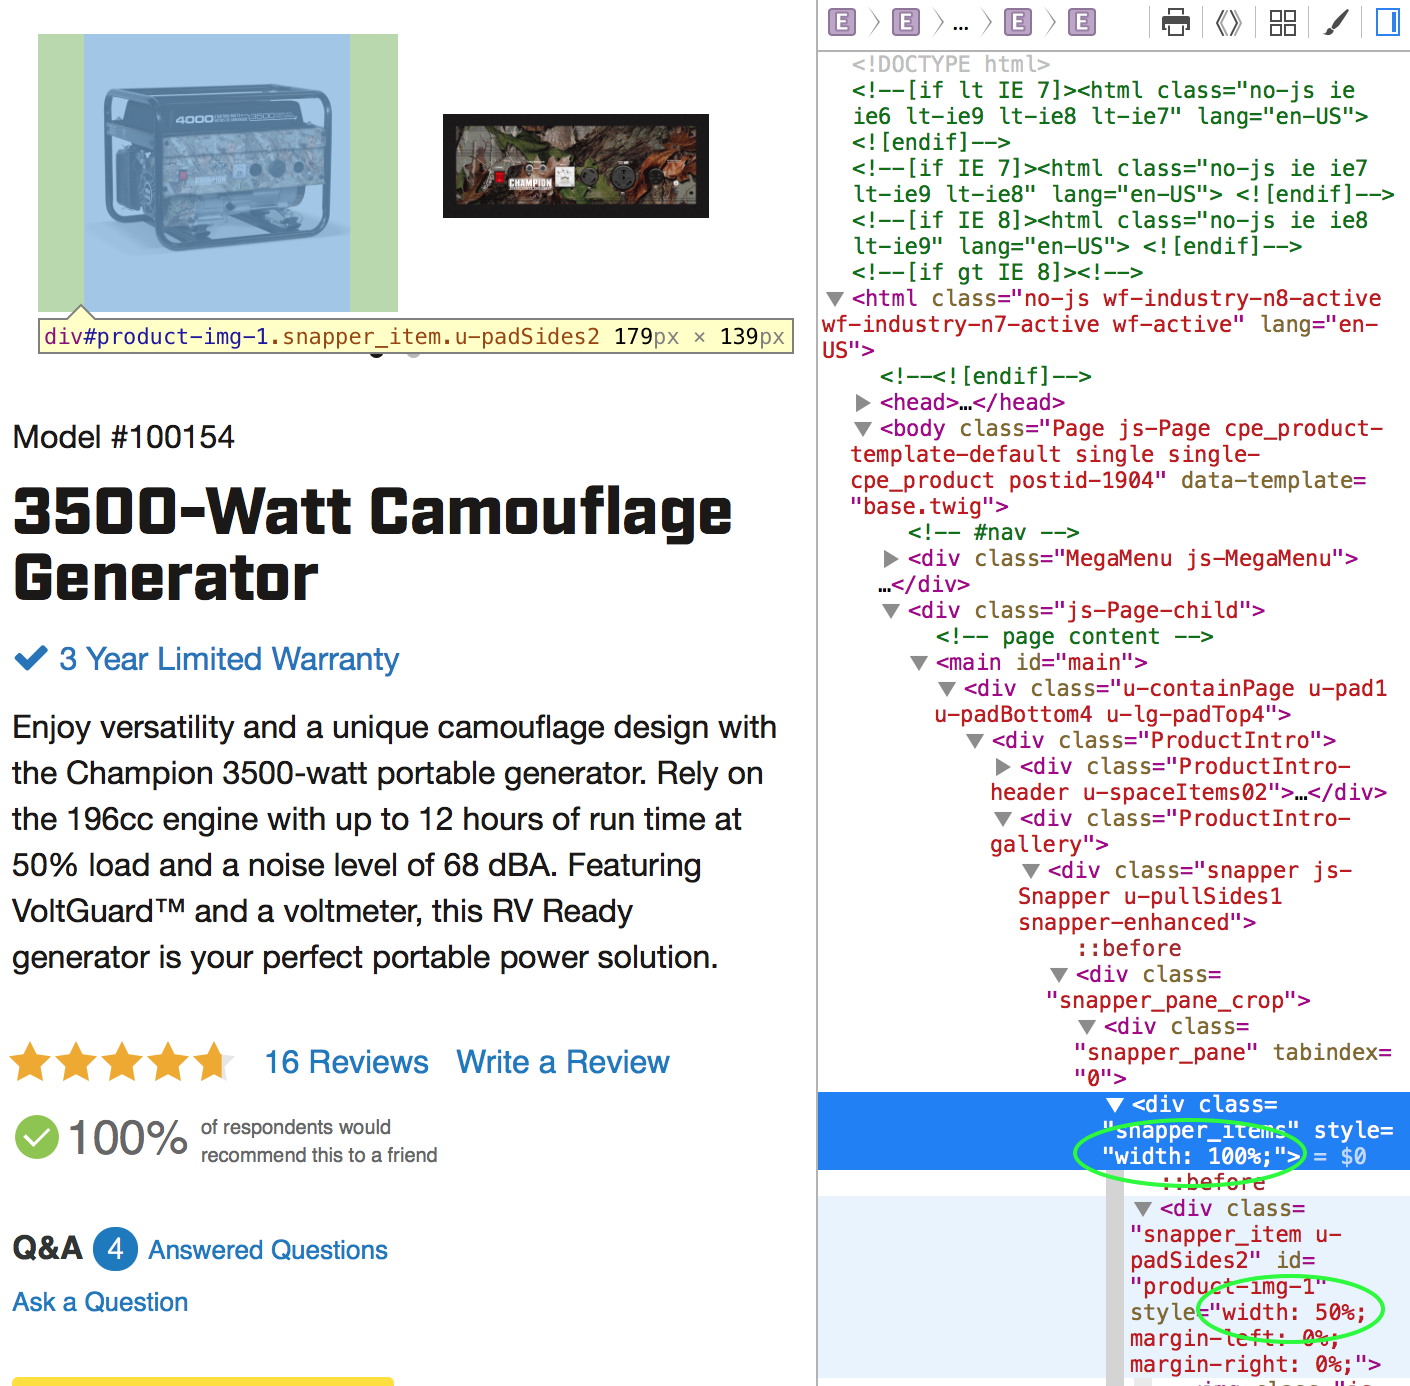 Inaccurate snapper_items width? · Issue #56 · filamentgroup/snapper